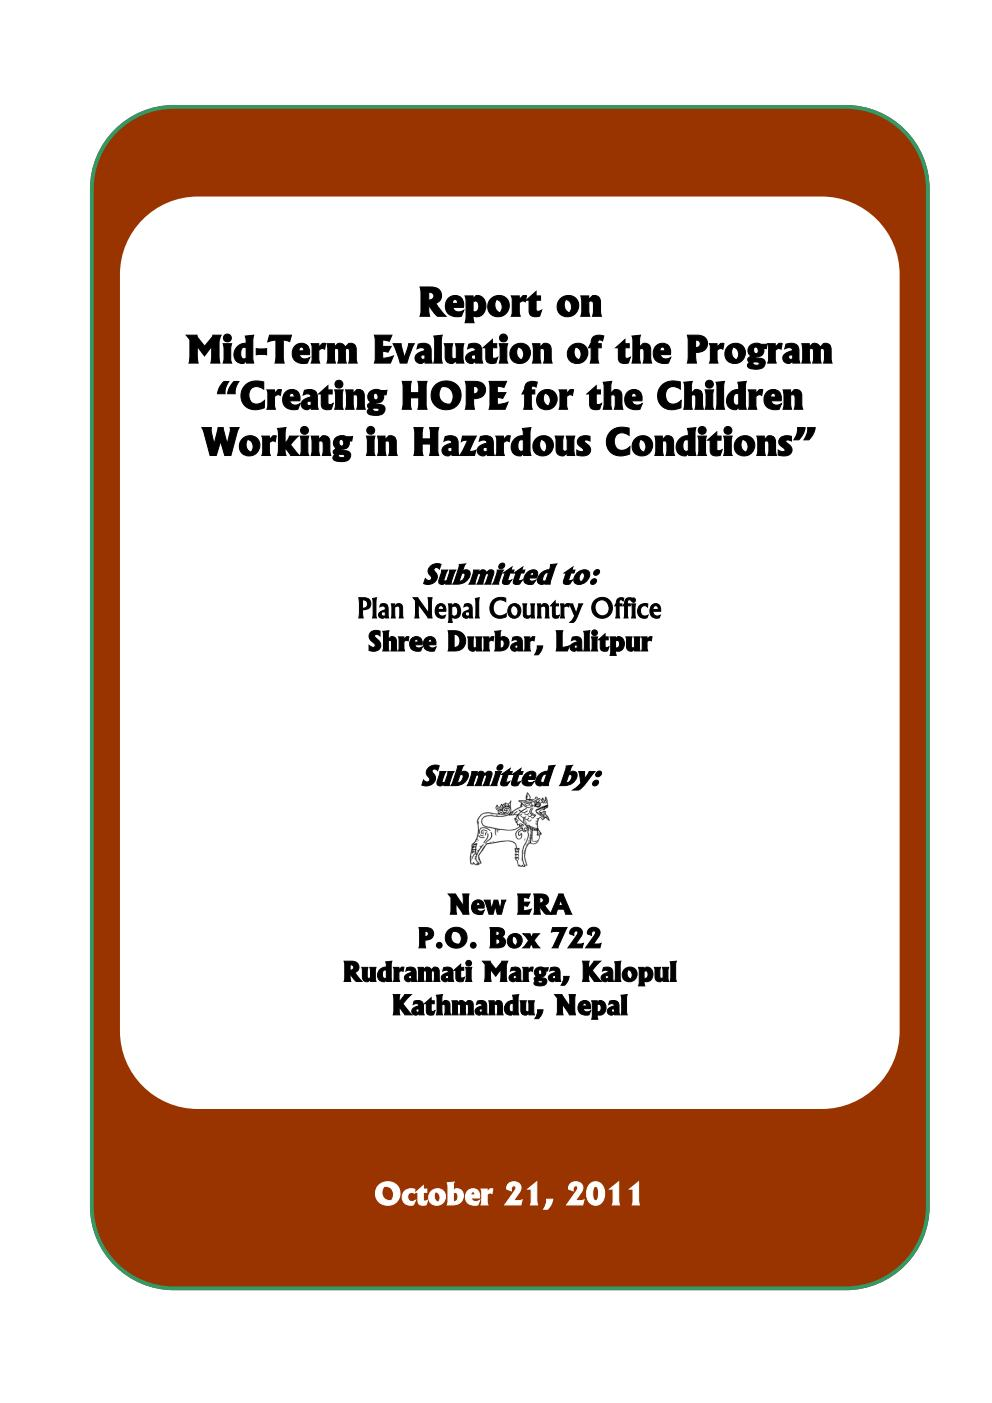 """Mid-Term Evaluation of the Program """"Creating HOPE FOR THE Children Woprking in Hazardous Conditions"""